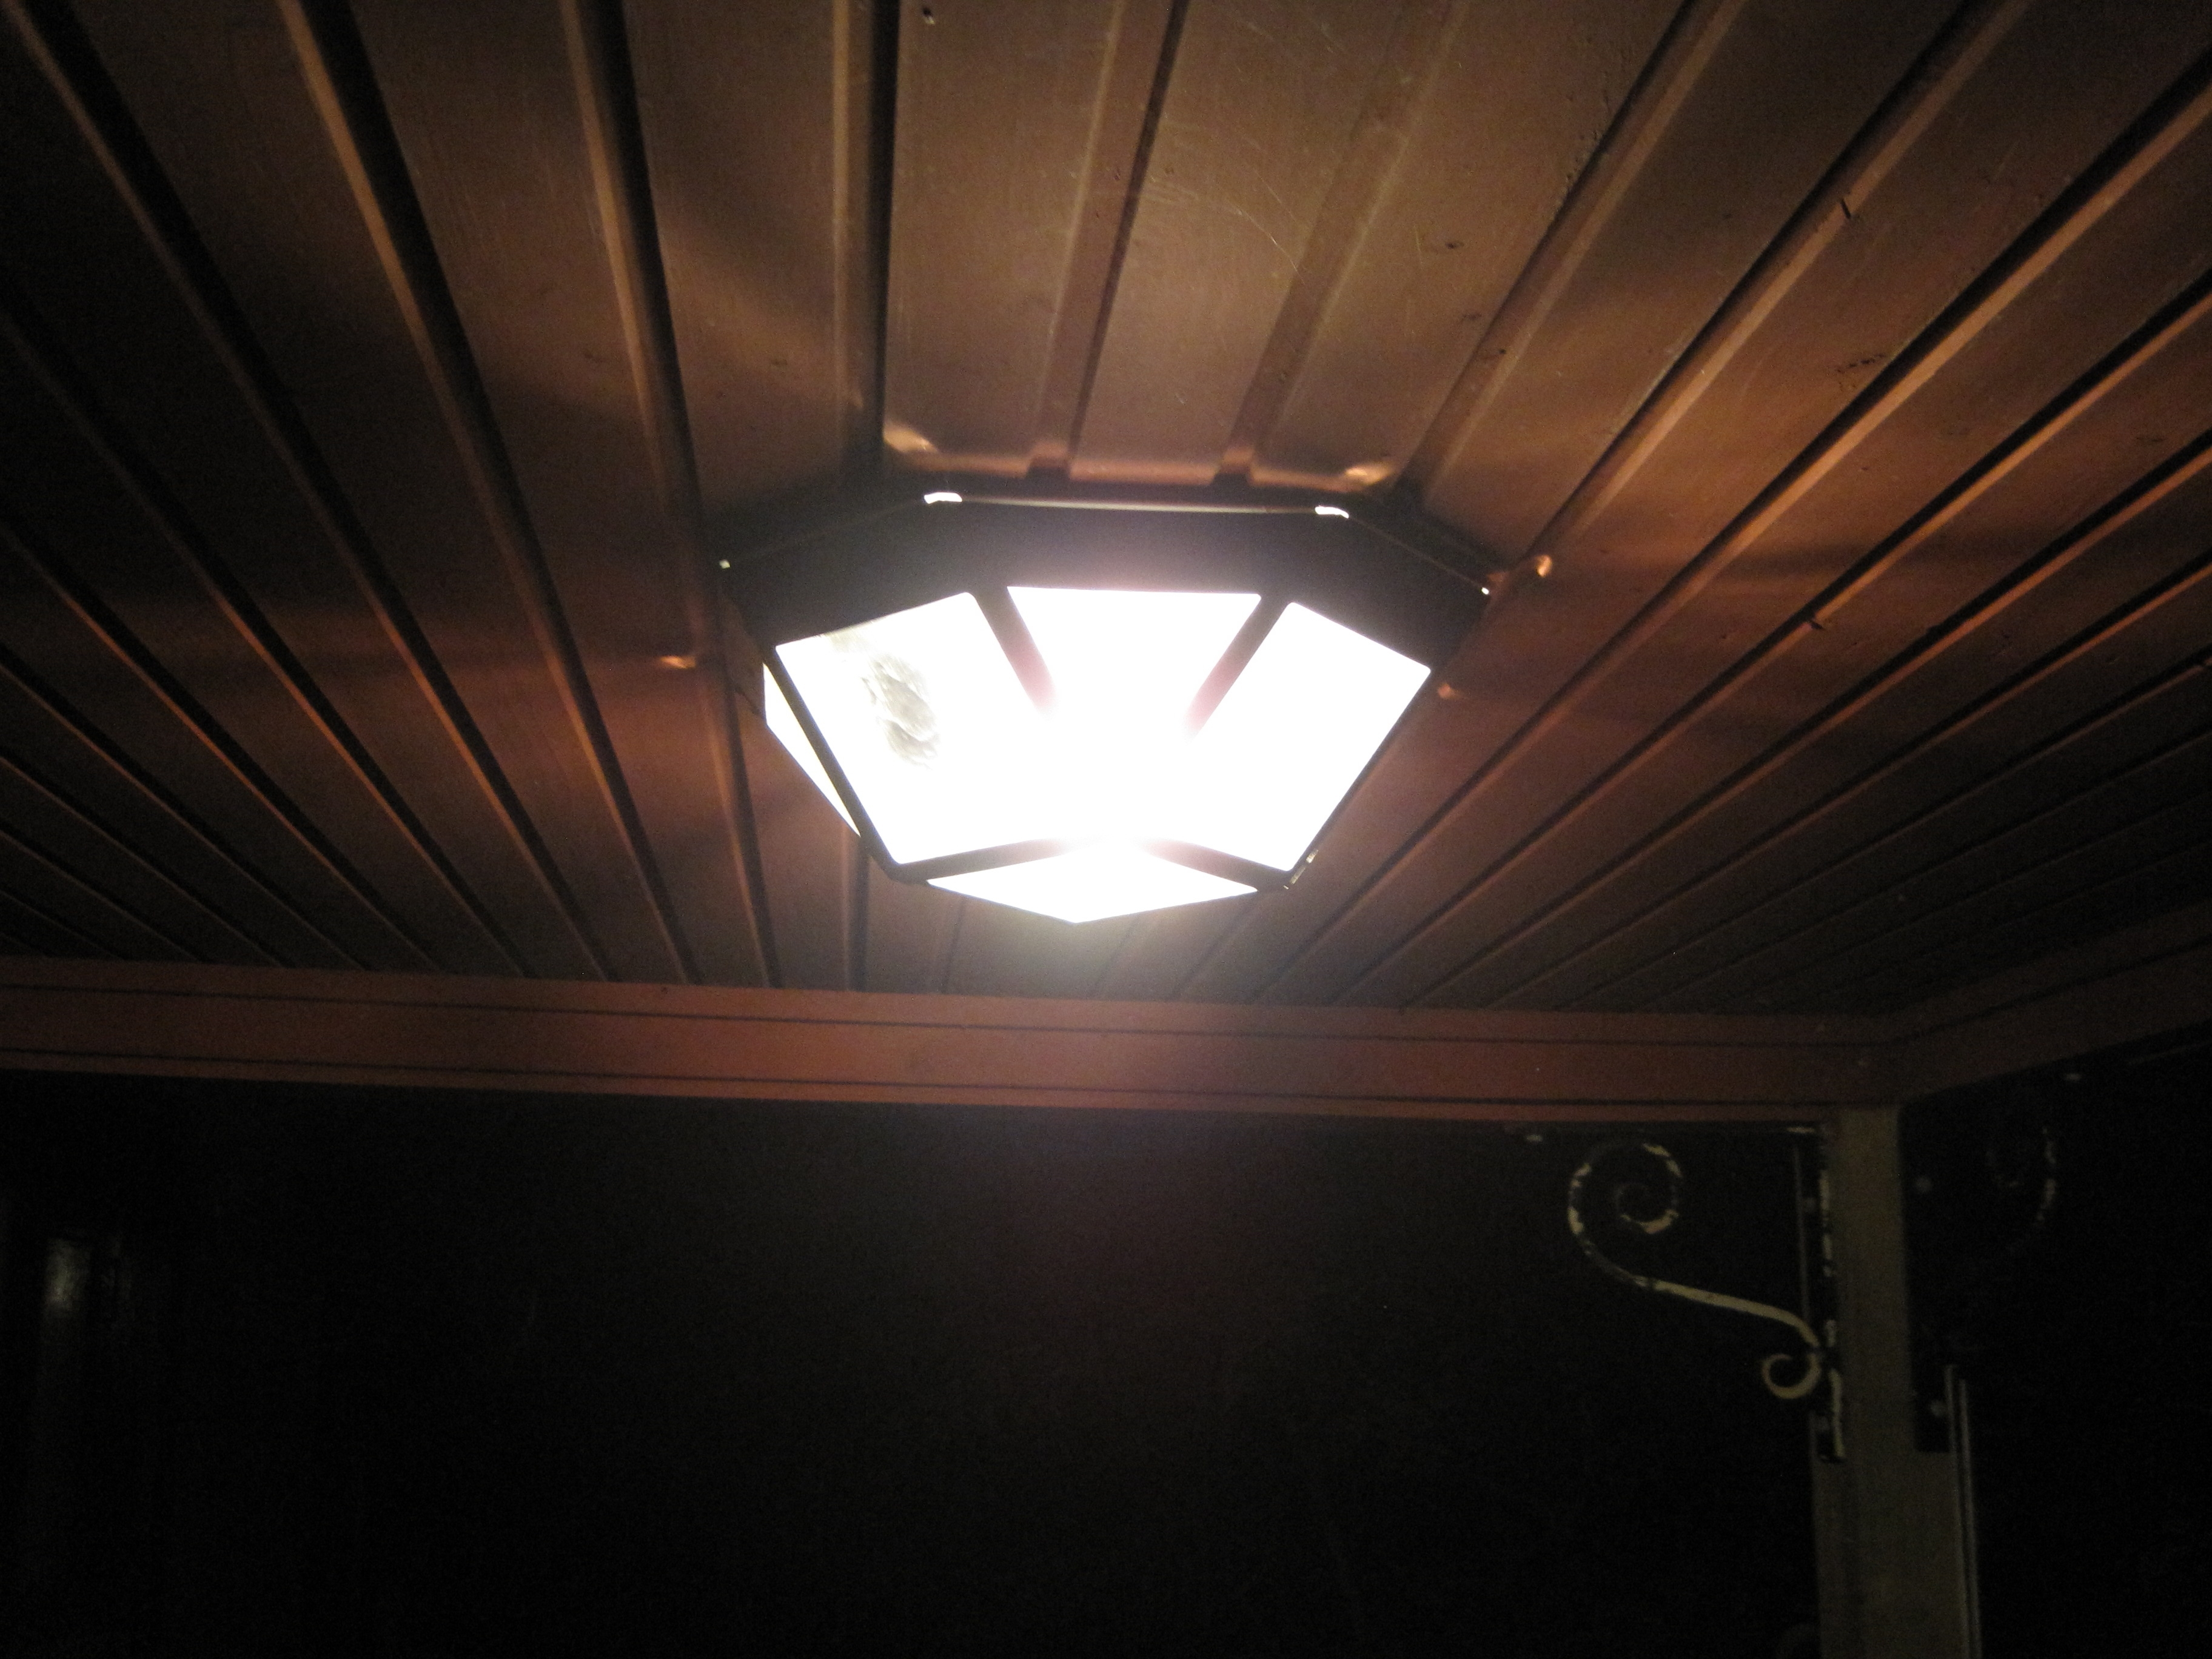 Lighting Design Greenwashing Lamp Outdoor Porch Ceiling Light Throughout Current Philips Outdoor Ceiling Lights (View 3 of 20)